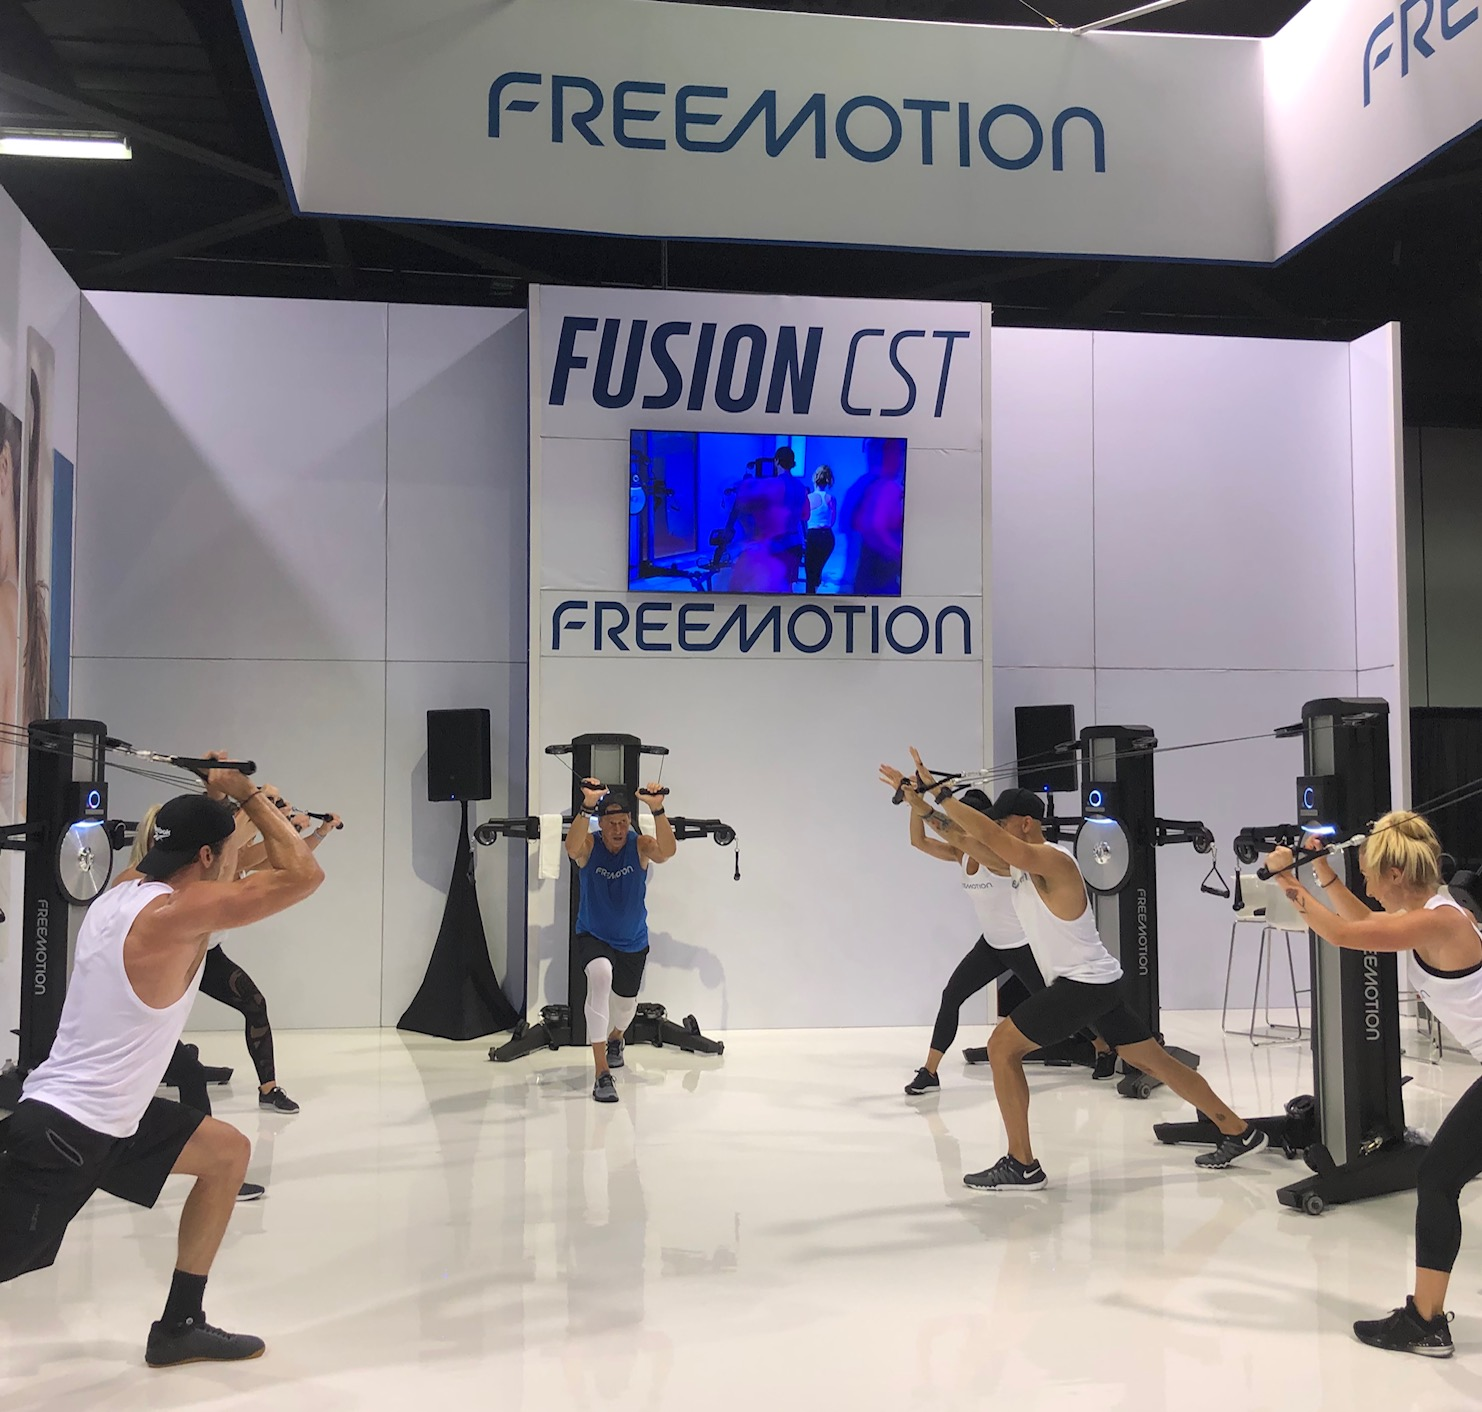 Expo Cool - FREEMOTION had on-going demos in their all white sleek space